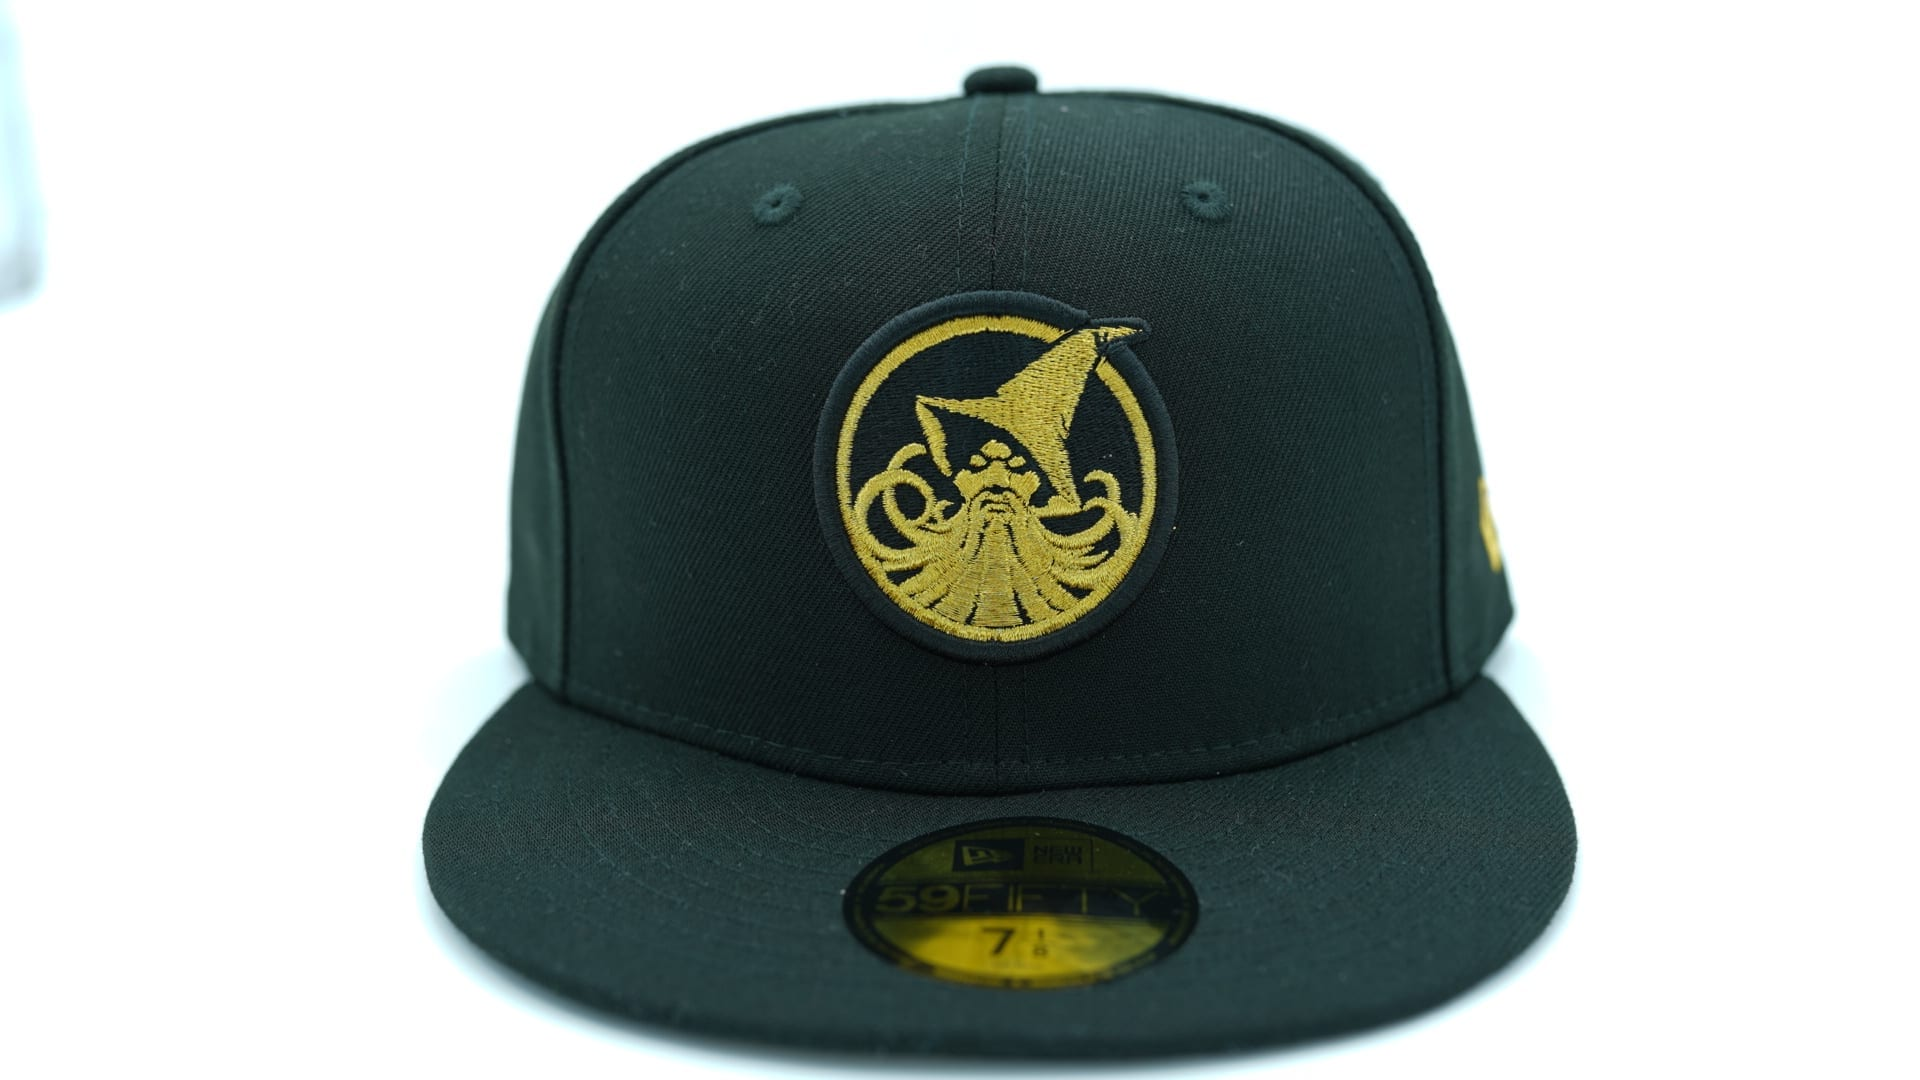 aquaman armor 59fifty fitted baseball cap dc new era